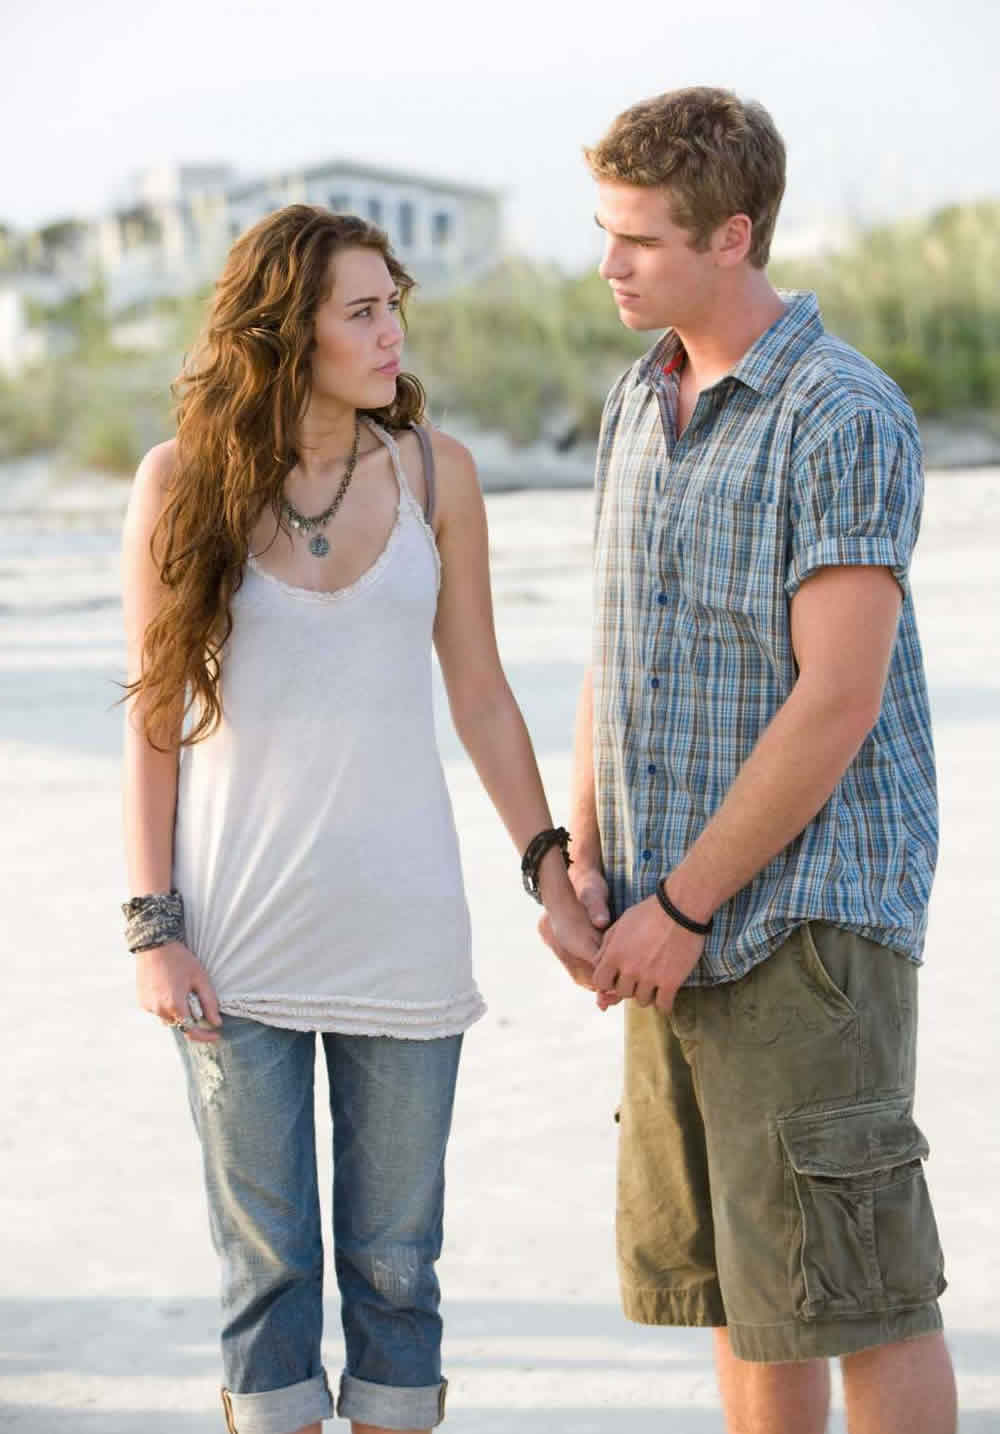 Miley Cyrus Liam Hemsworth The Last Song Nicholas Spark